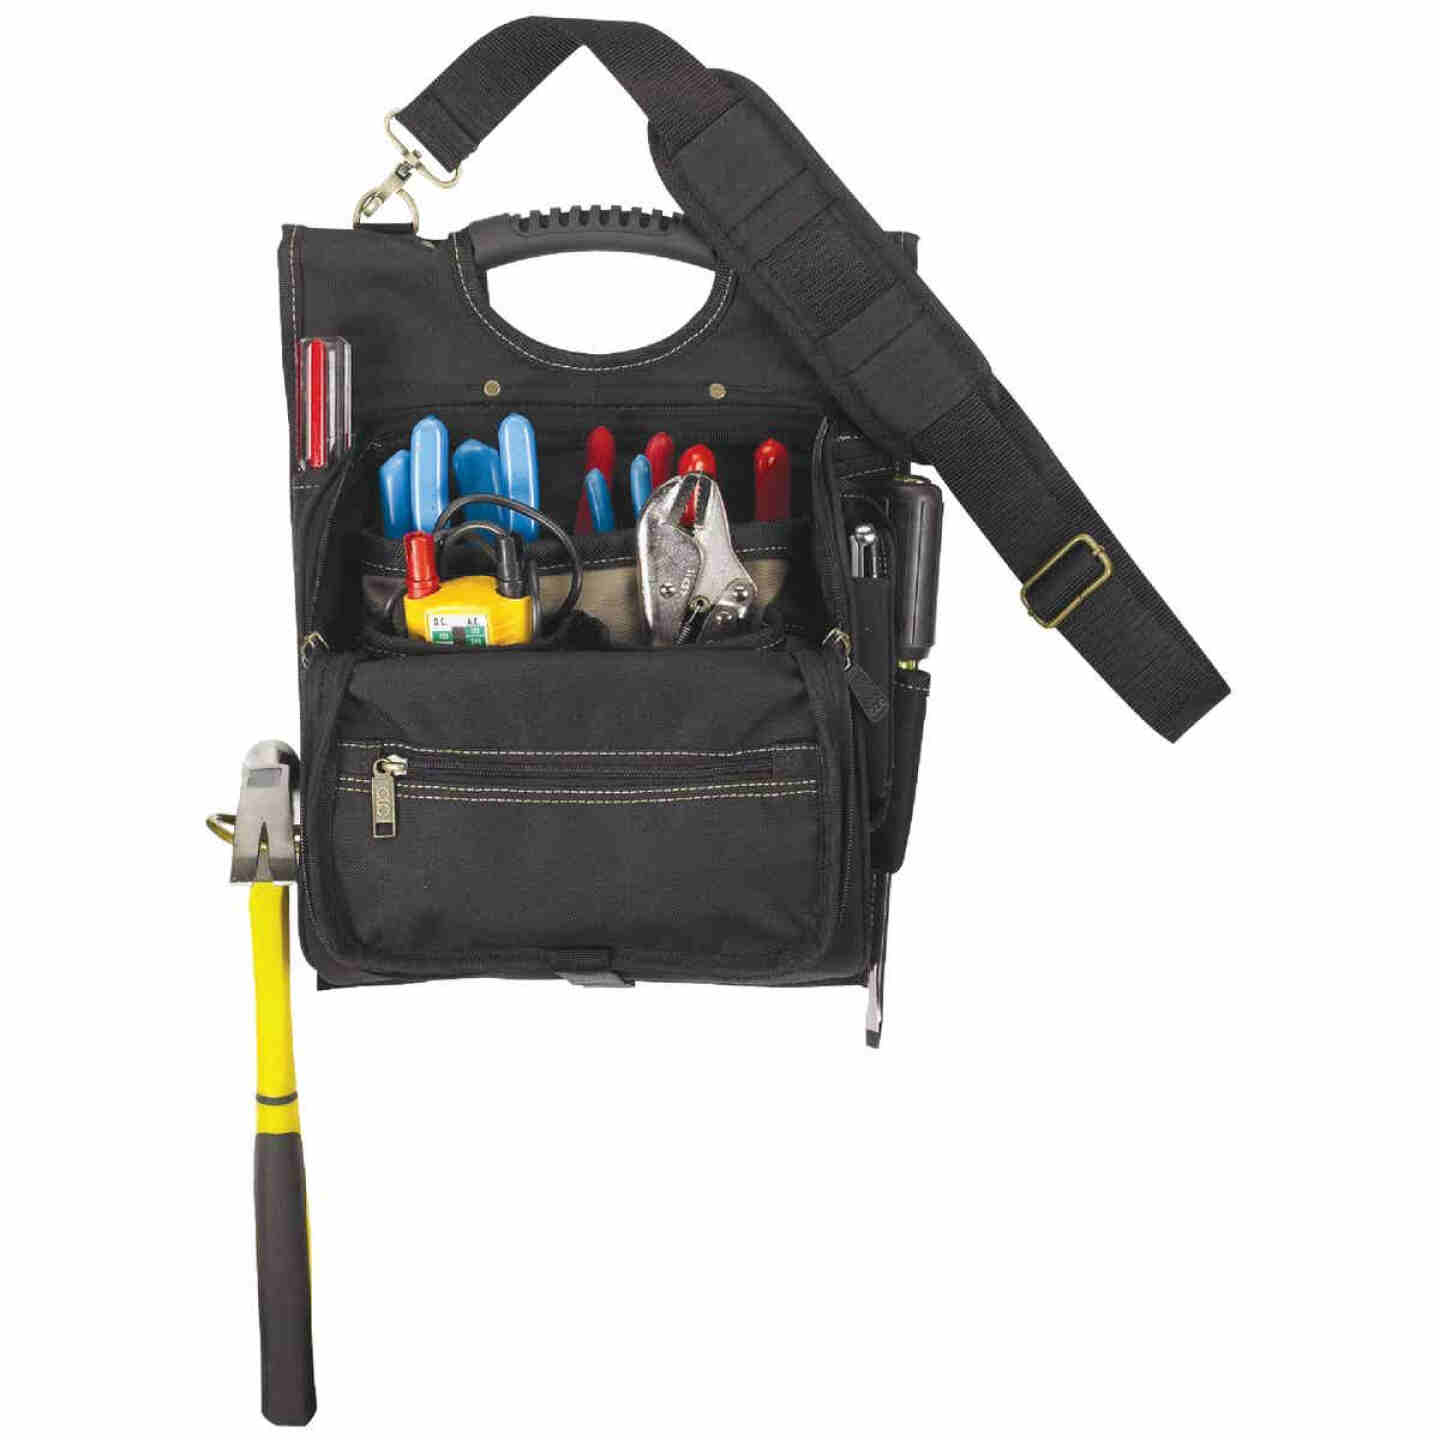 CLC 21-Pocket Zippered Electrician's Tool Pouch Image 1